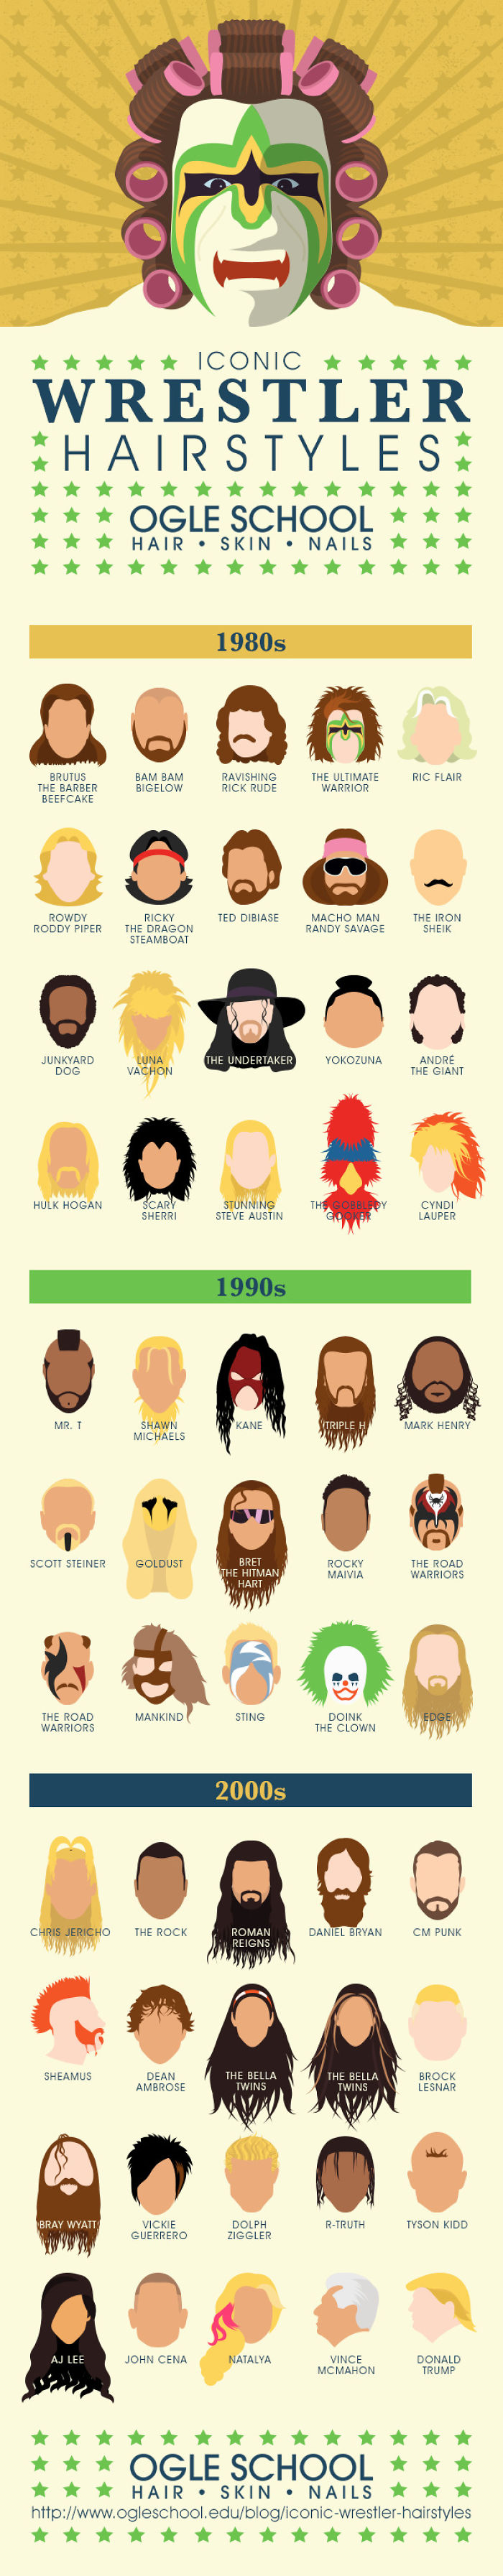 Most Iconic Wrestler Hairstyles Ever